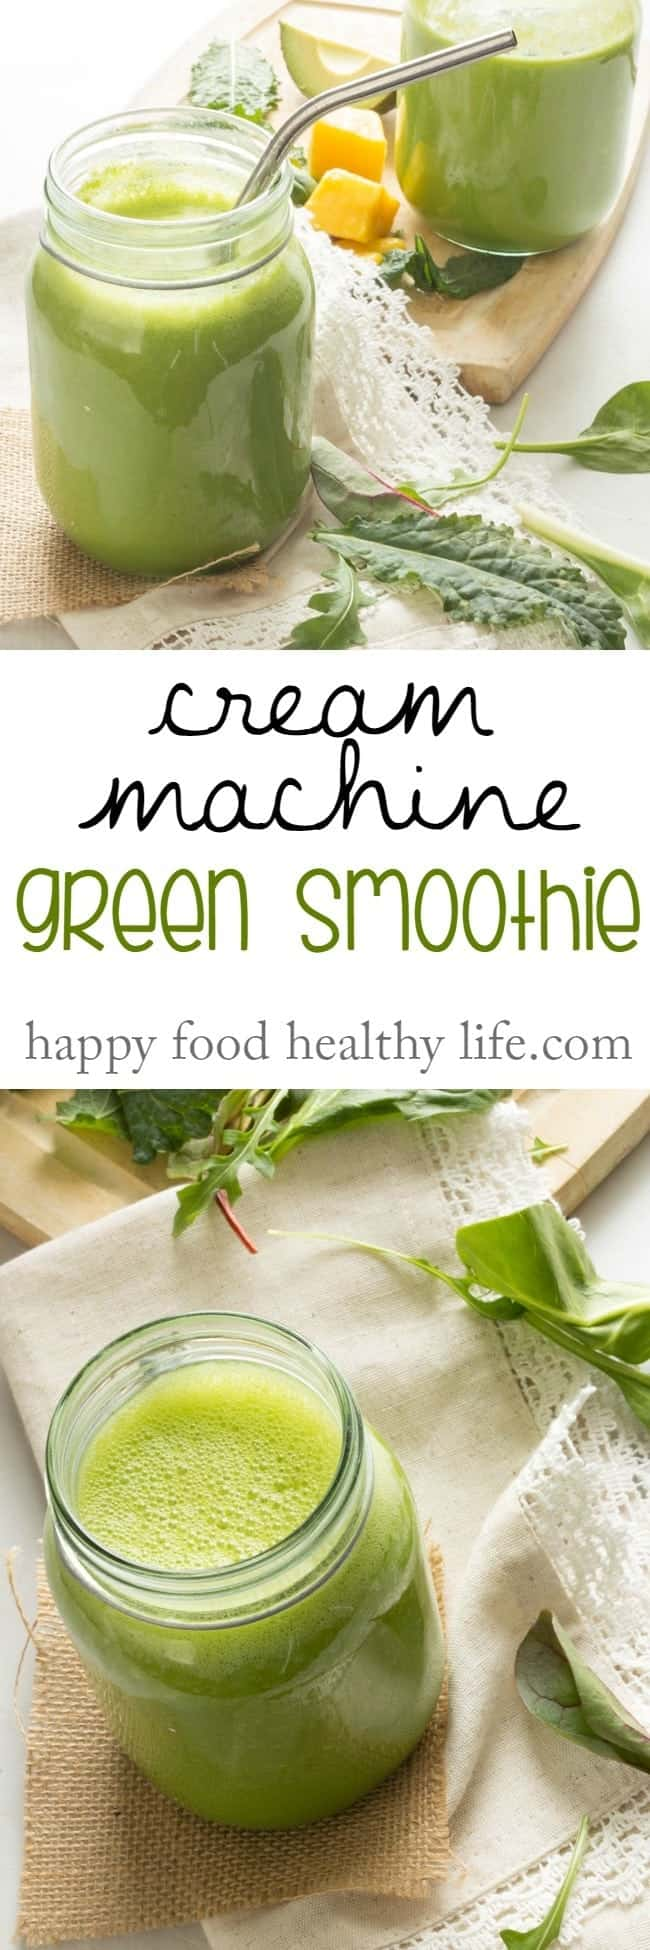 Looking for a delicious green smoothie that's full of greens but tastes sweet, creamy, and fruity? This is the one for you! And if you want to make it a meal-replacement, Click through for a quick cheat-sheet for you that'll help you out! It's FREE!